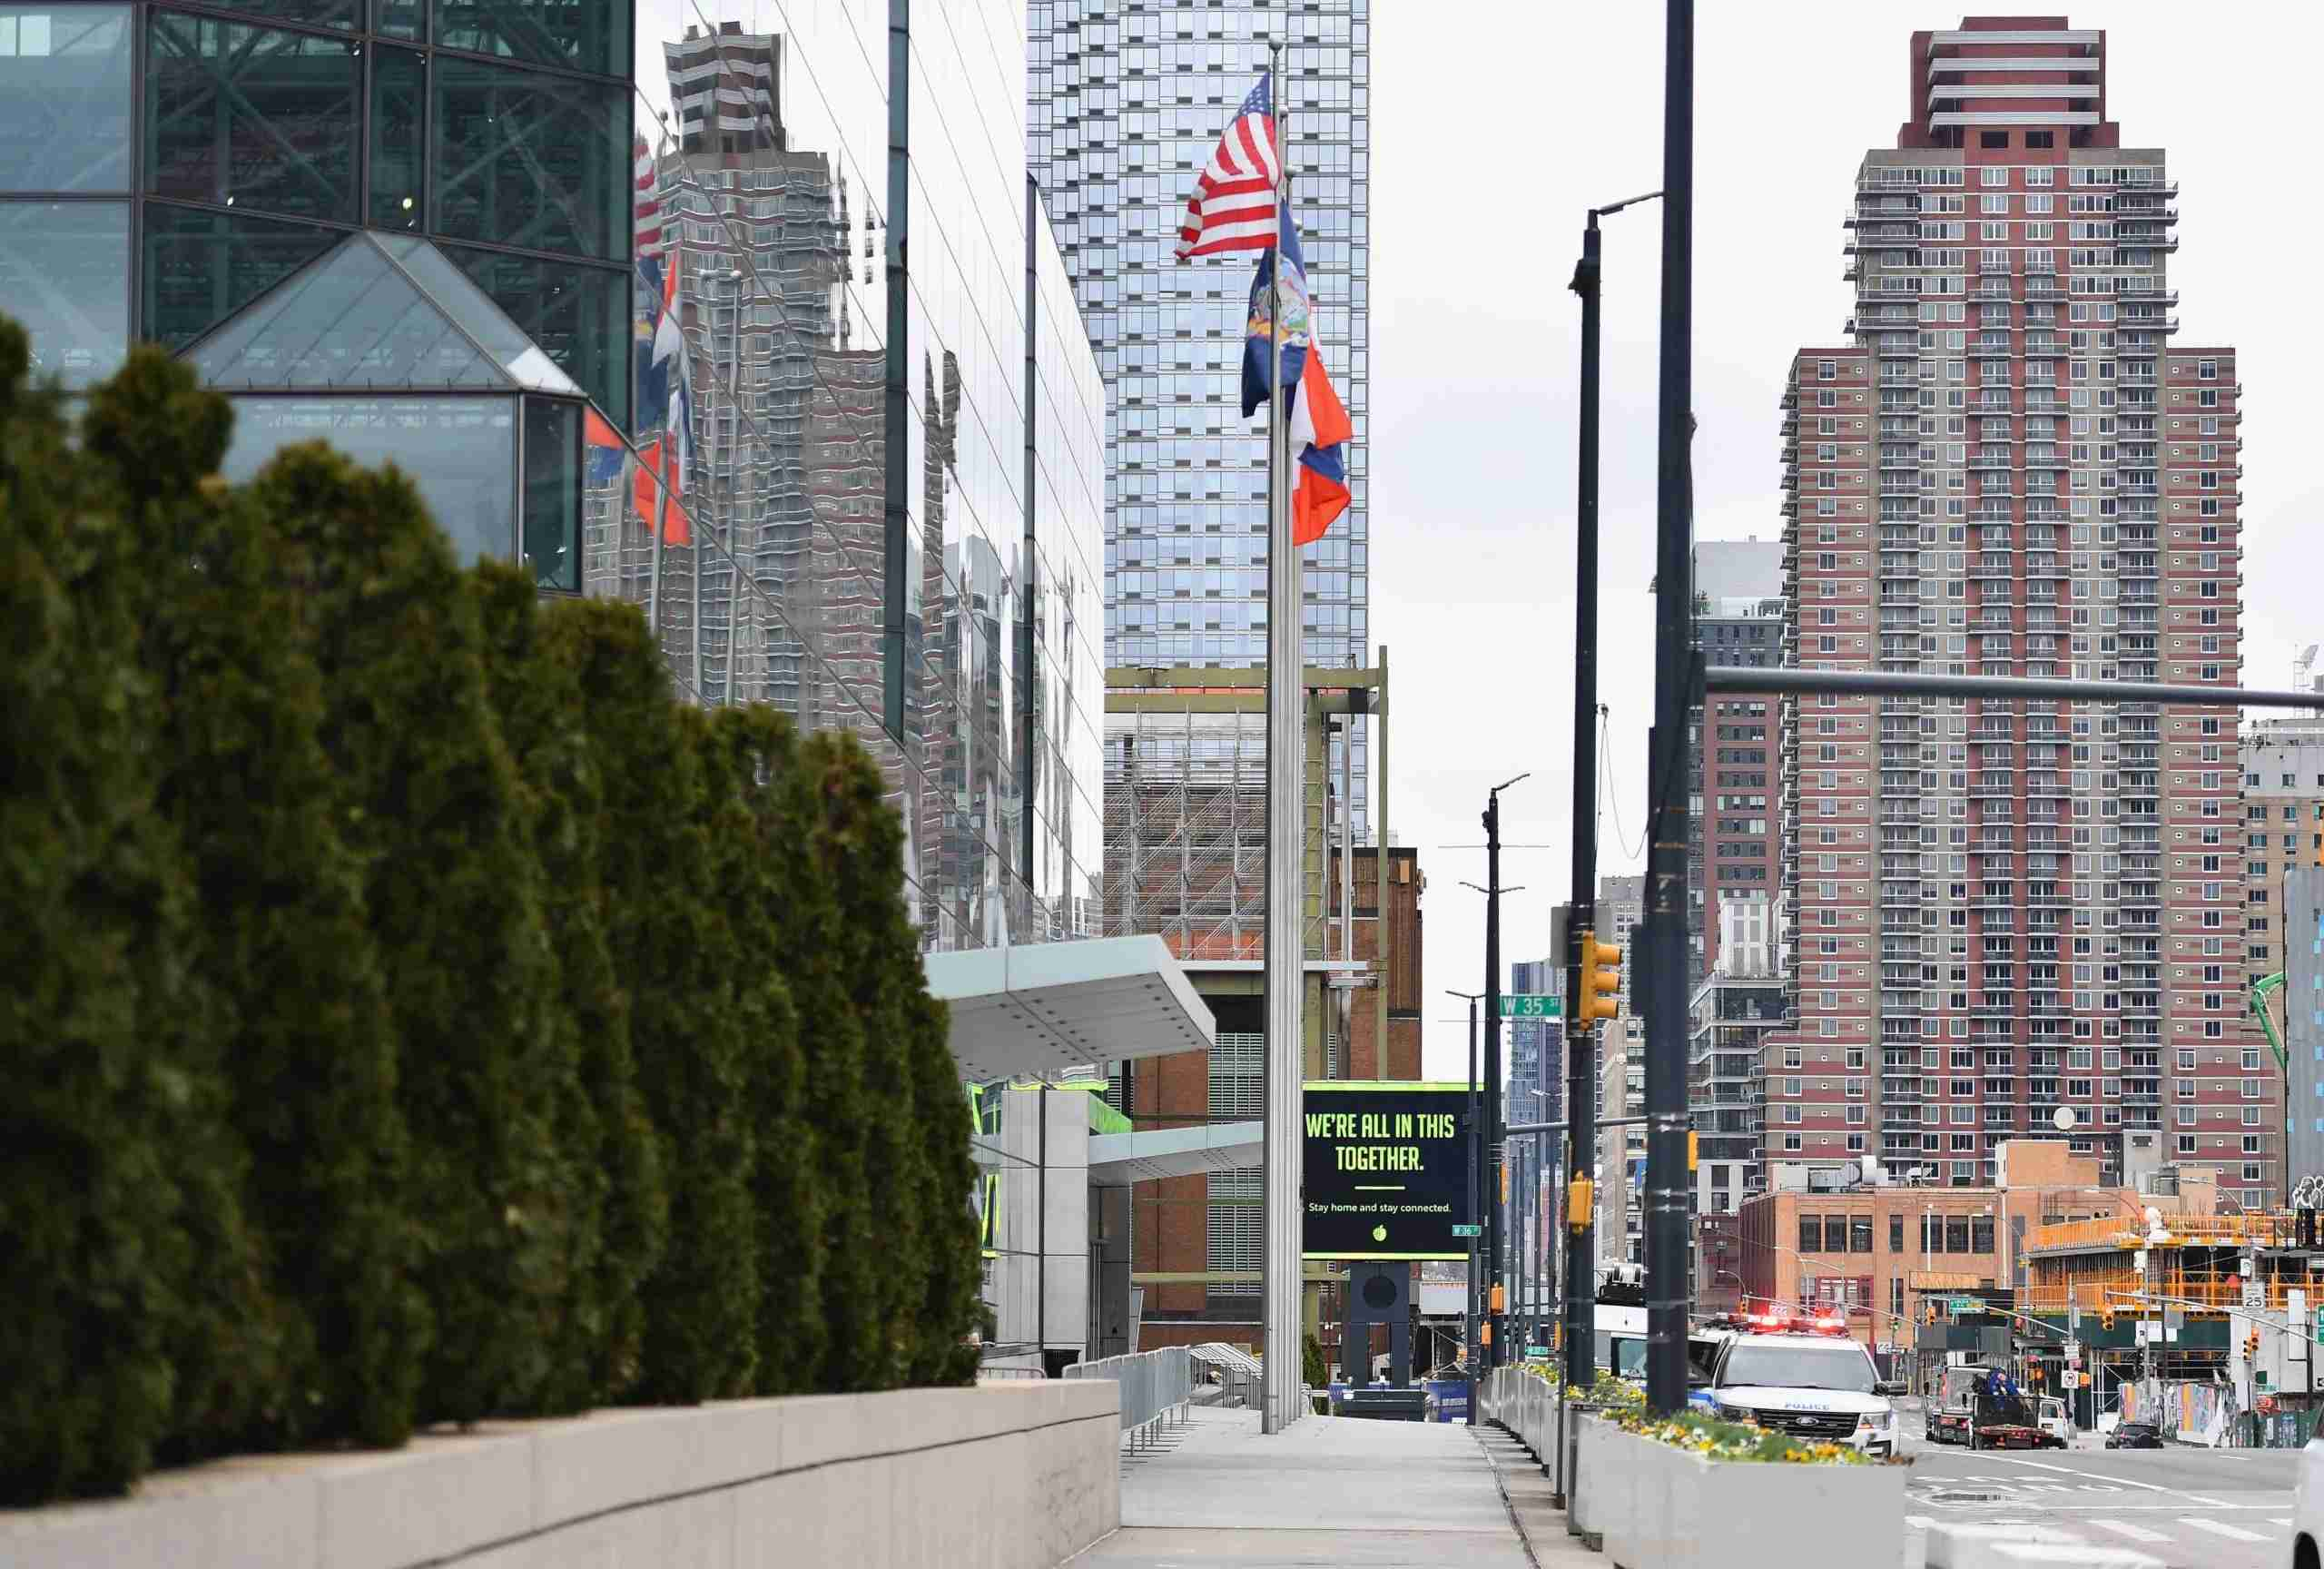 View of a digital billboard in front of the Jacob K. Javits Convention Center on March 31, 2020 in New York City. - Uneasiness about the American economy spiked in March, according to a survey released March 31, 2020, and that was before the worst of the lockdowns due to the coronavirus pandemic were imposed. (Photo by Angela Weiss / AFP) (Photo by ANGELA WEISS/AFP via Getty Images)